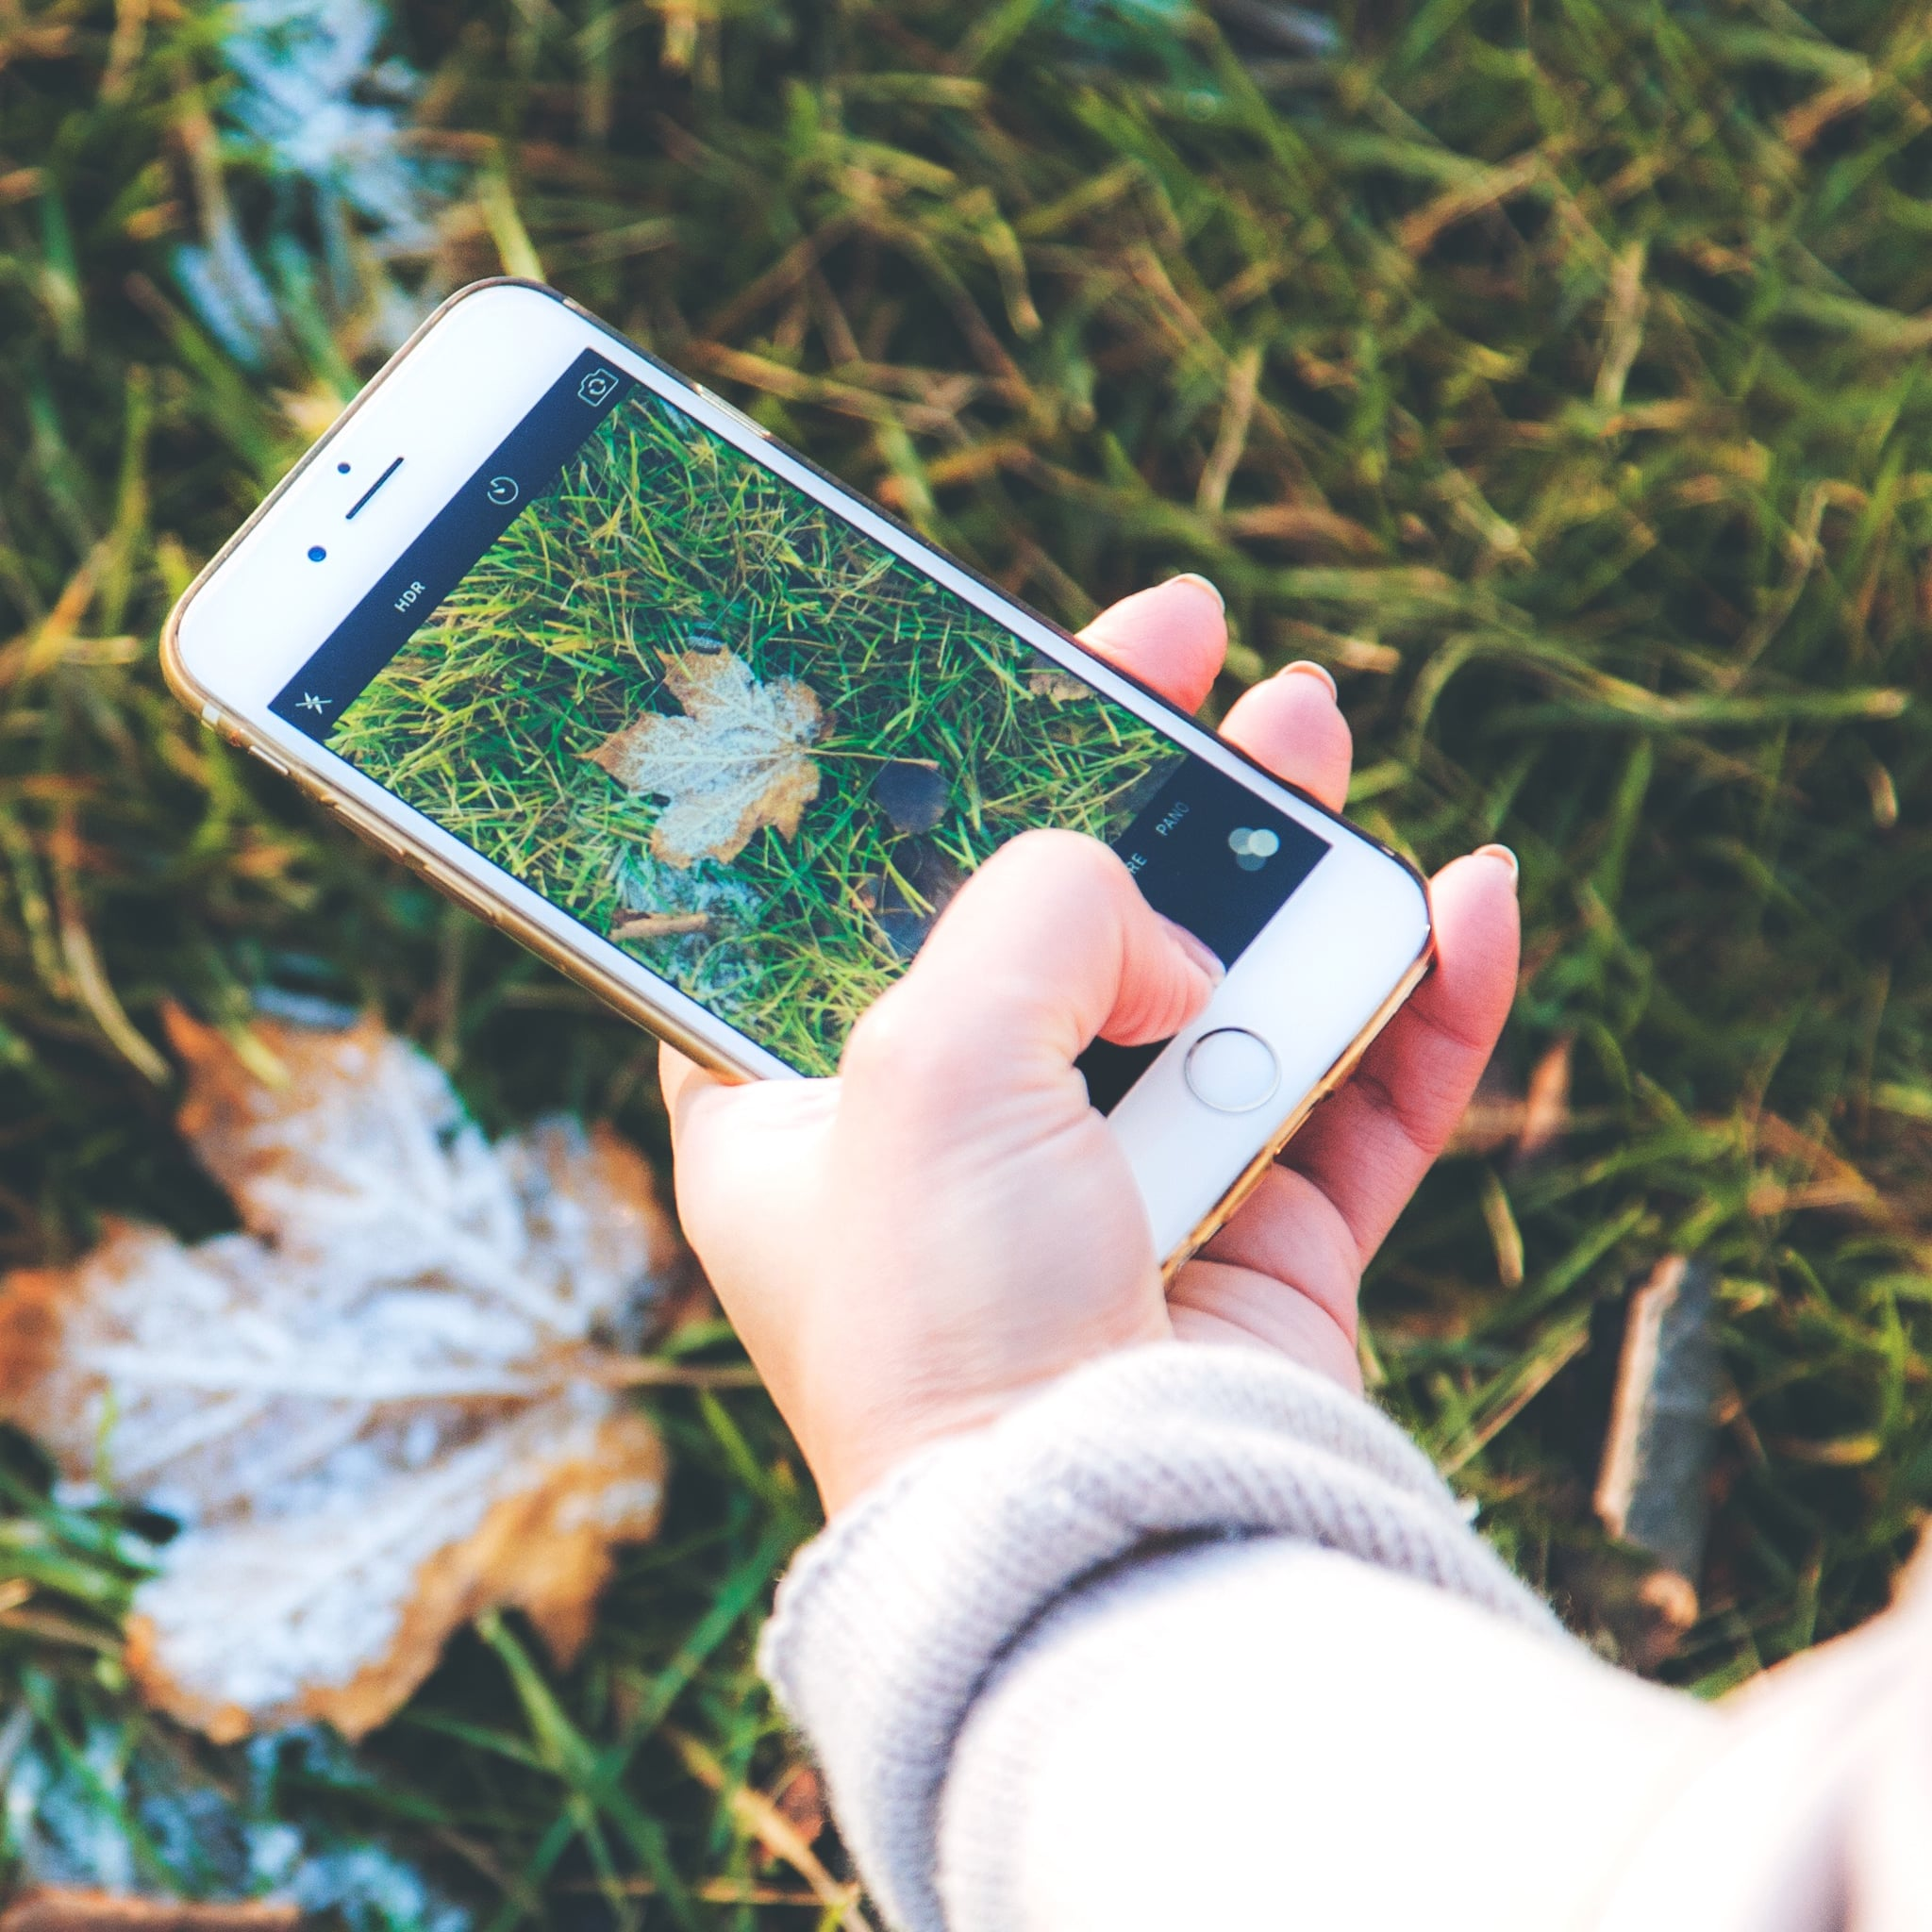 20 Cozy Fall Wallpapers For Your iPhone | POPSUGAR Tech